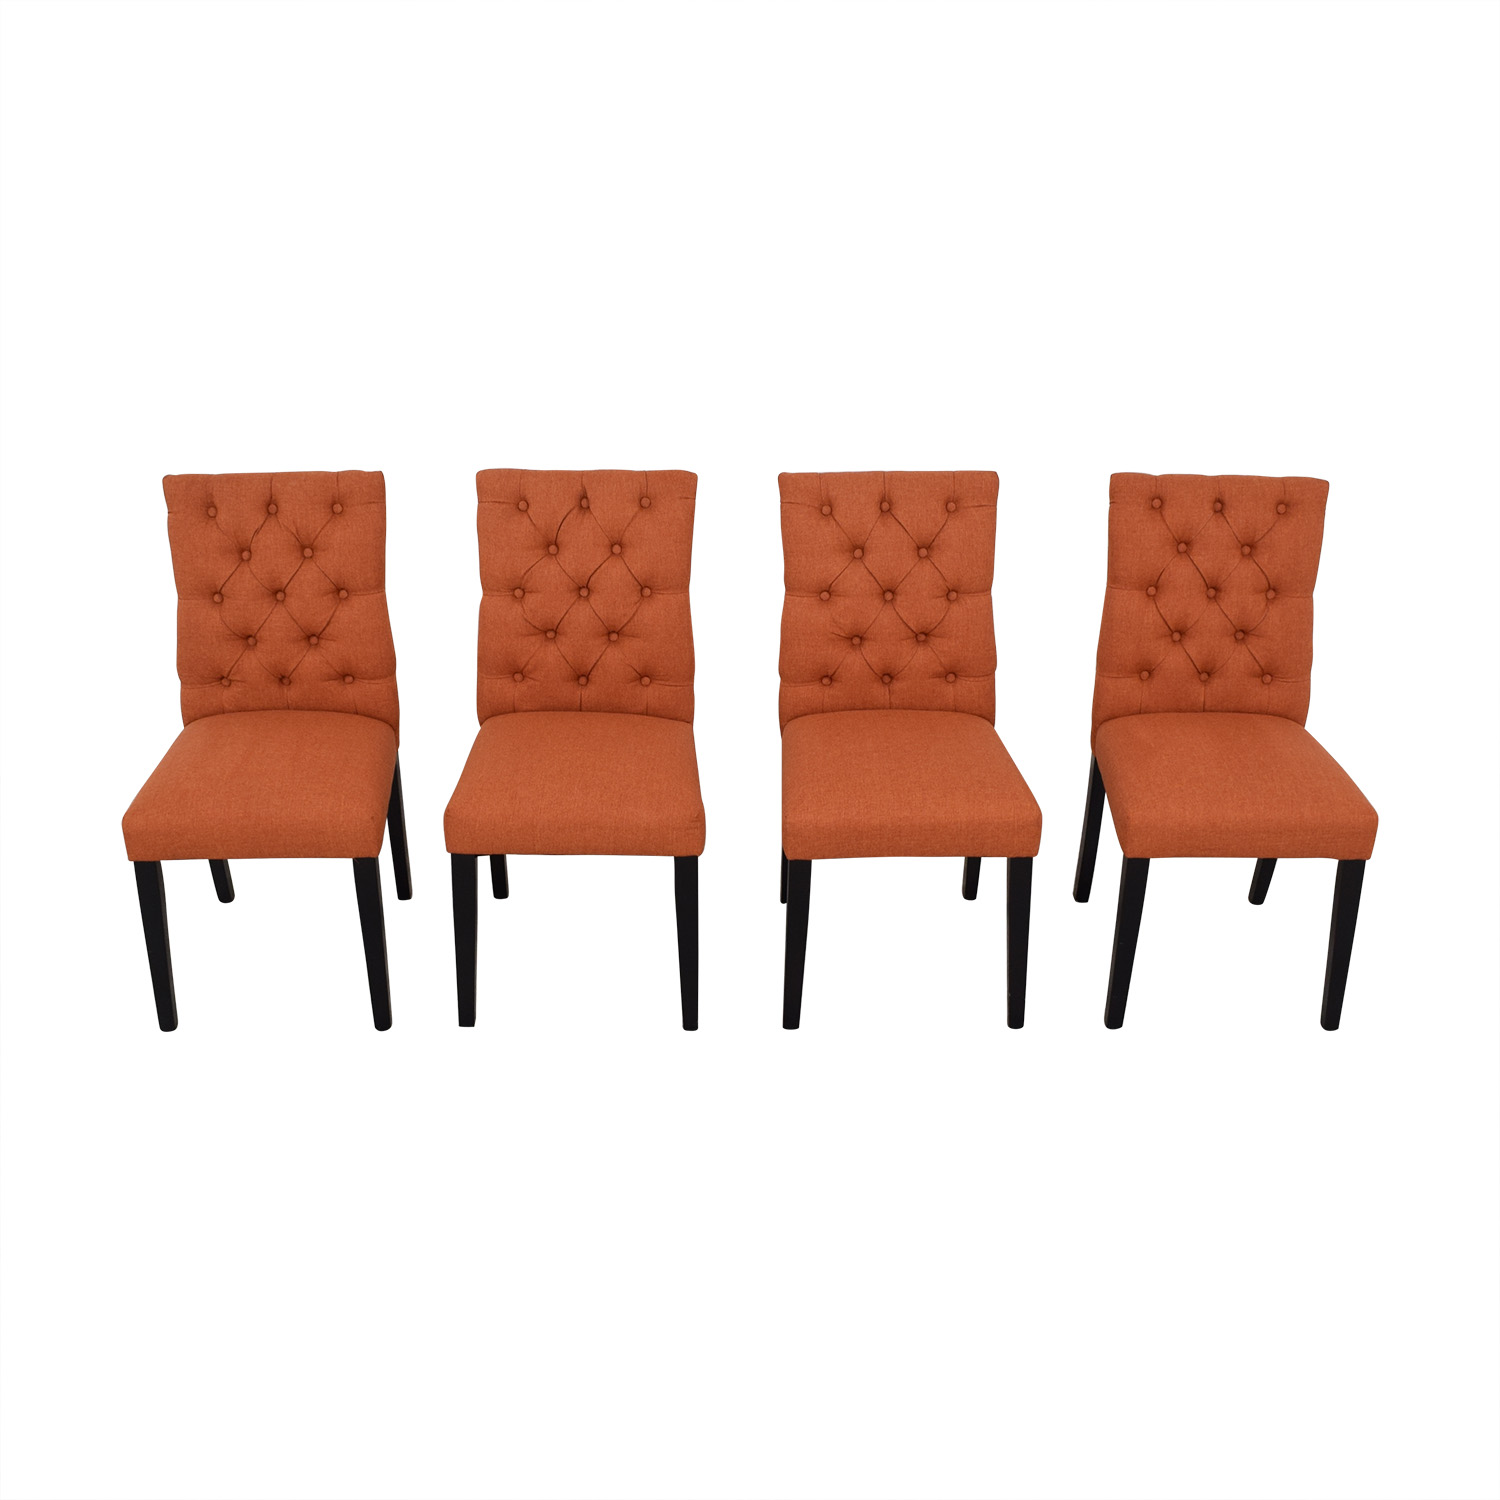 Modway Modway Confer Dining Chairs Dining Chairs